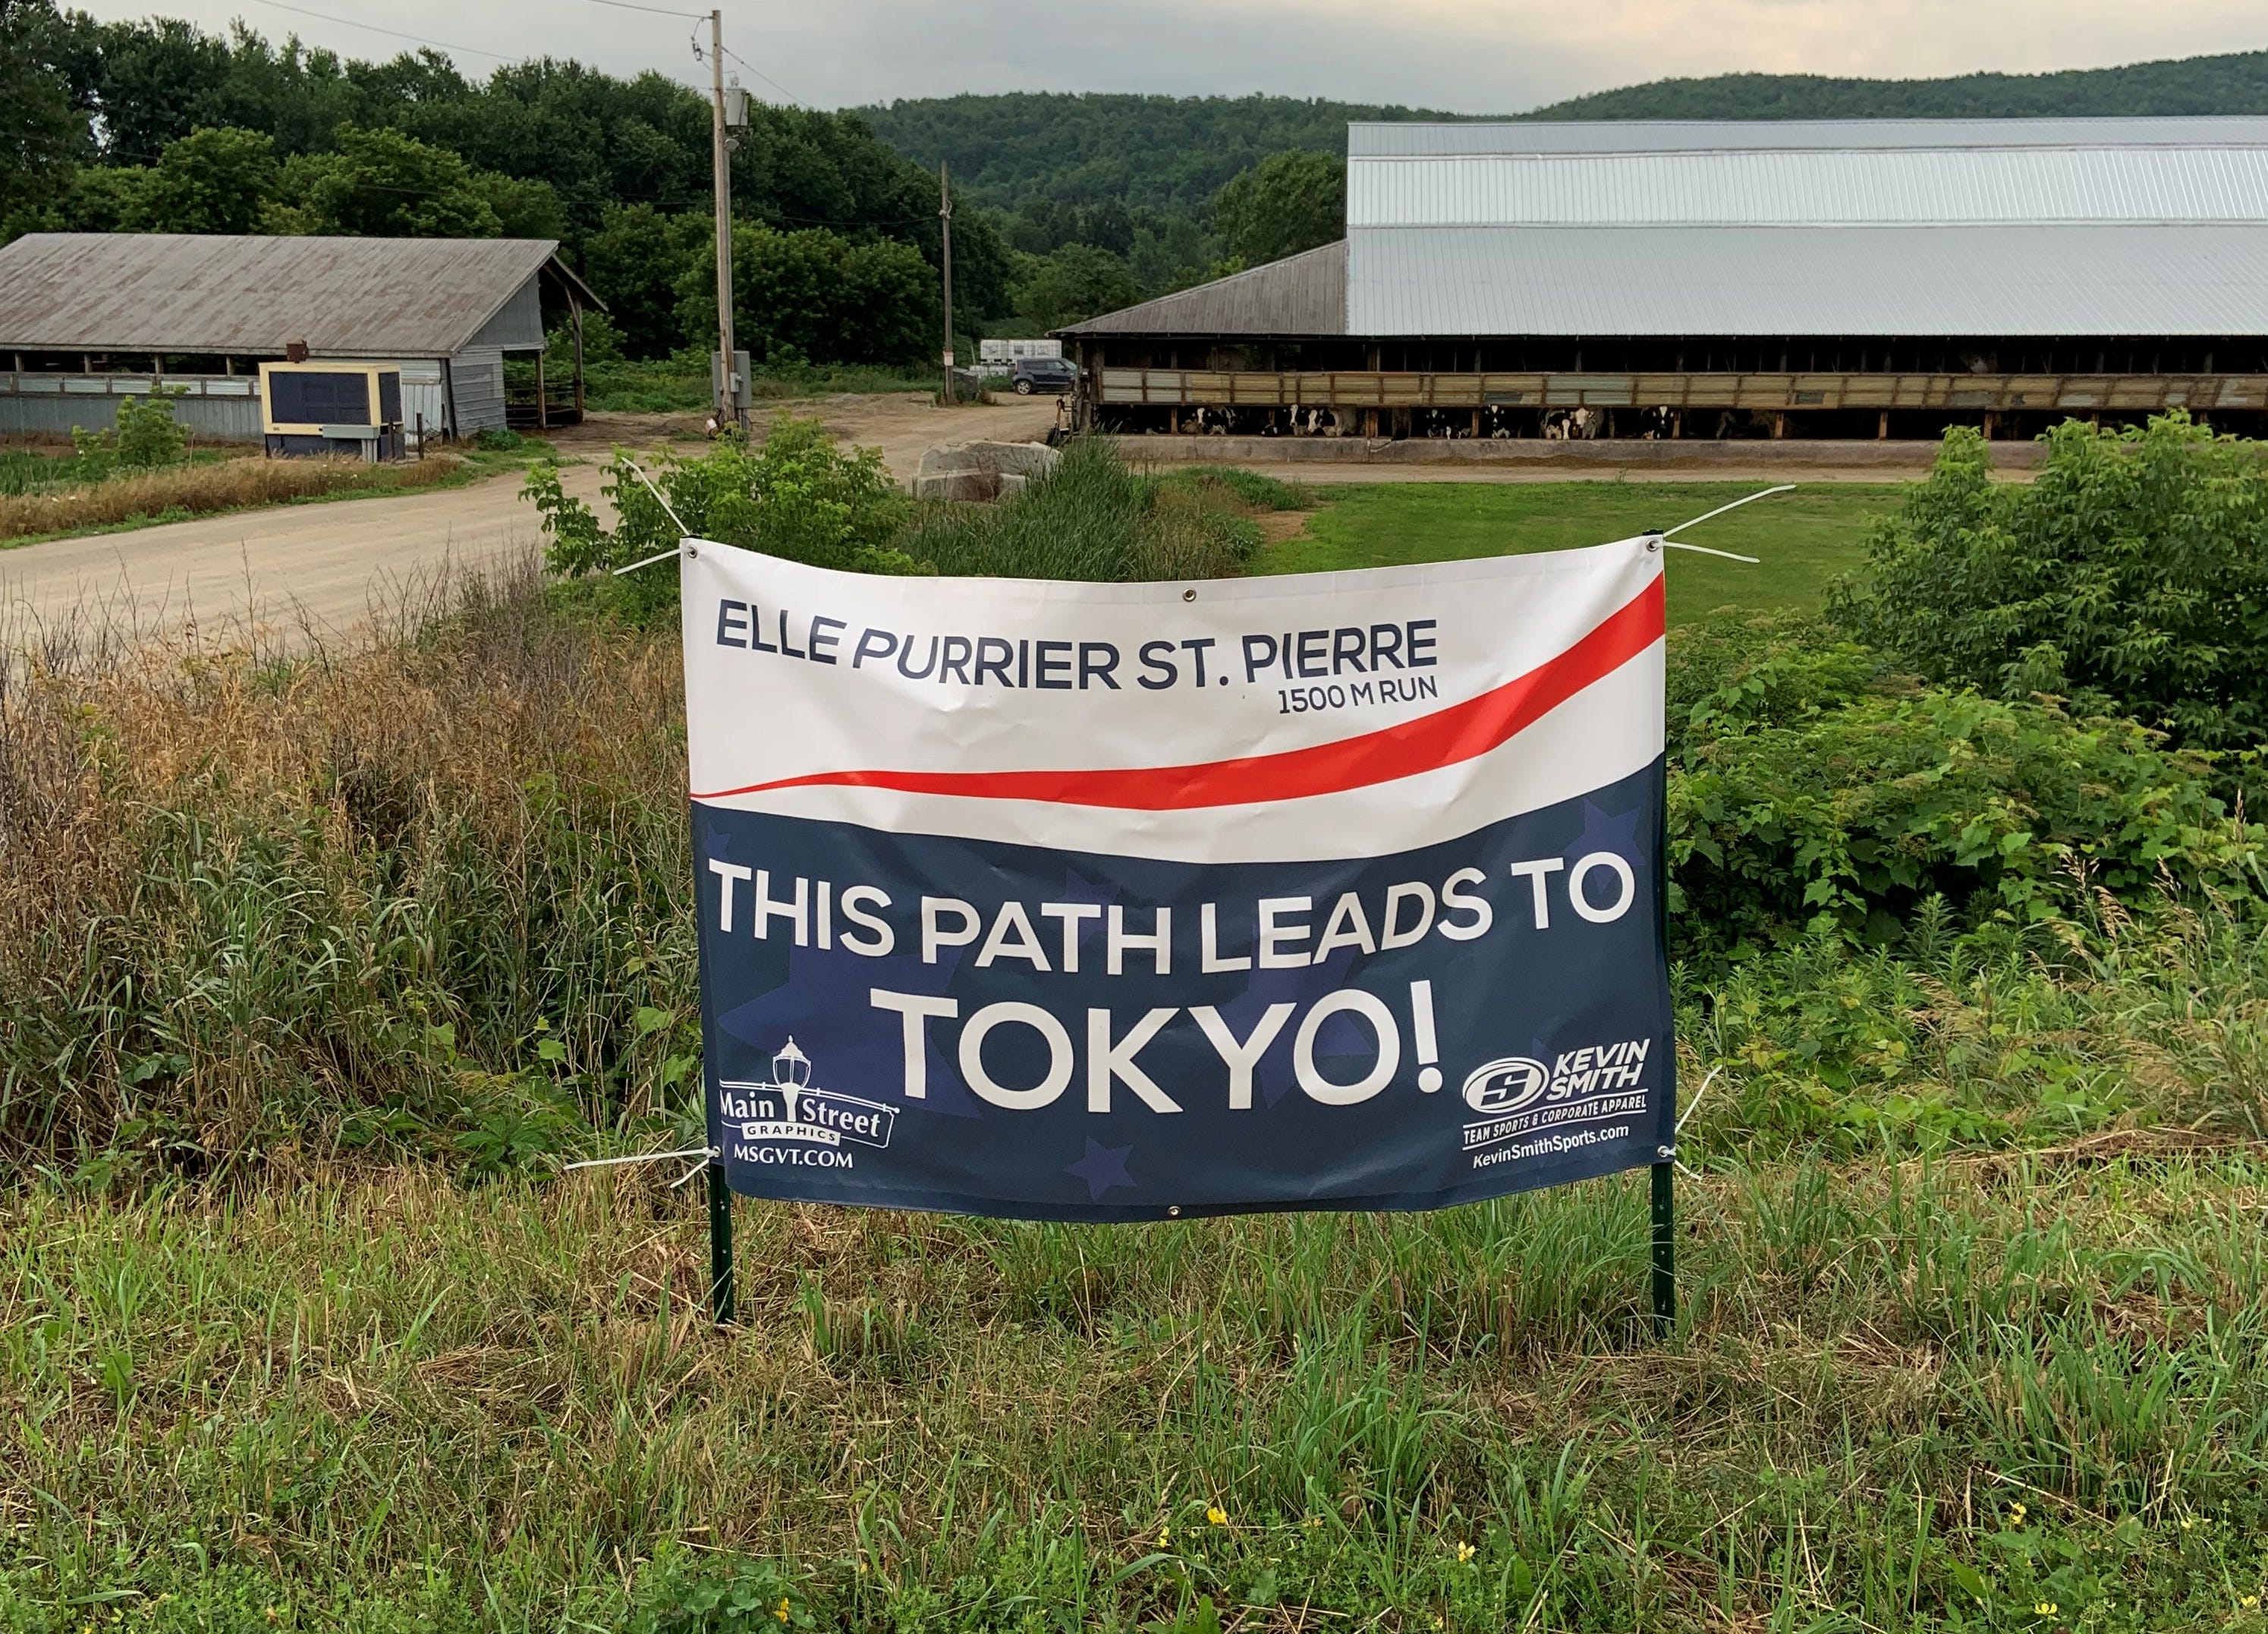 Tokyo Olympics sign marks the entrance to a Missisquoi Valley Rail Trail that Elle Purrier St. Pierre runs while home. Taken July 12, 2021.